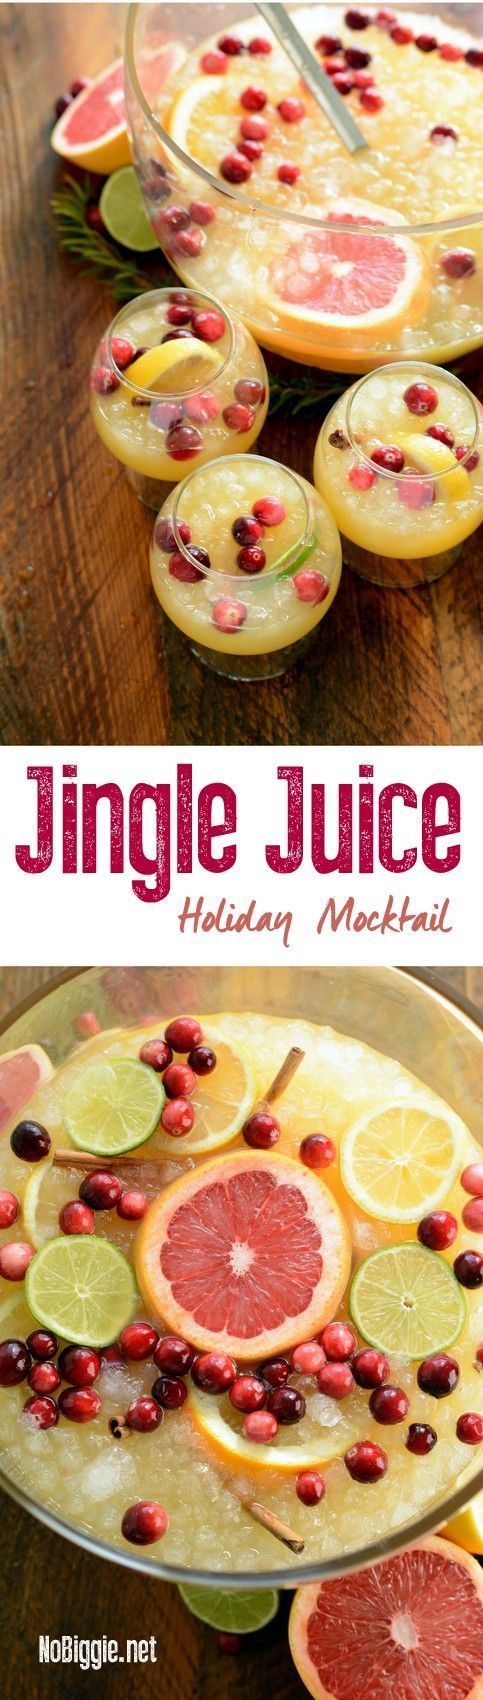 jingle juice holiday mocktail | http://NoBiggie.net #mixedwithTrop #ad